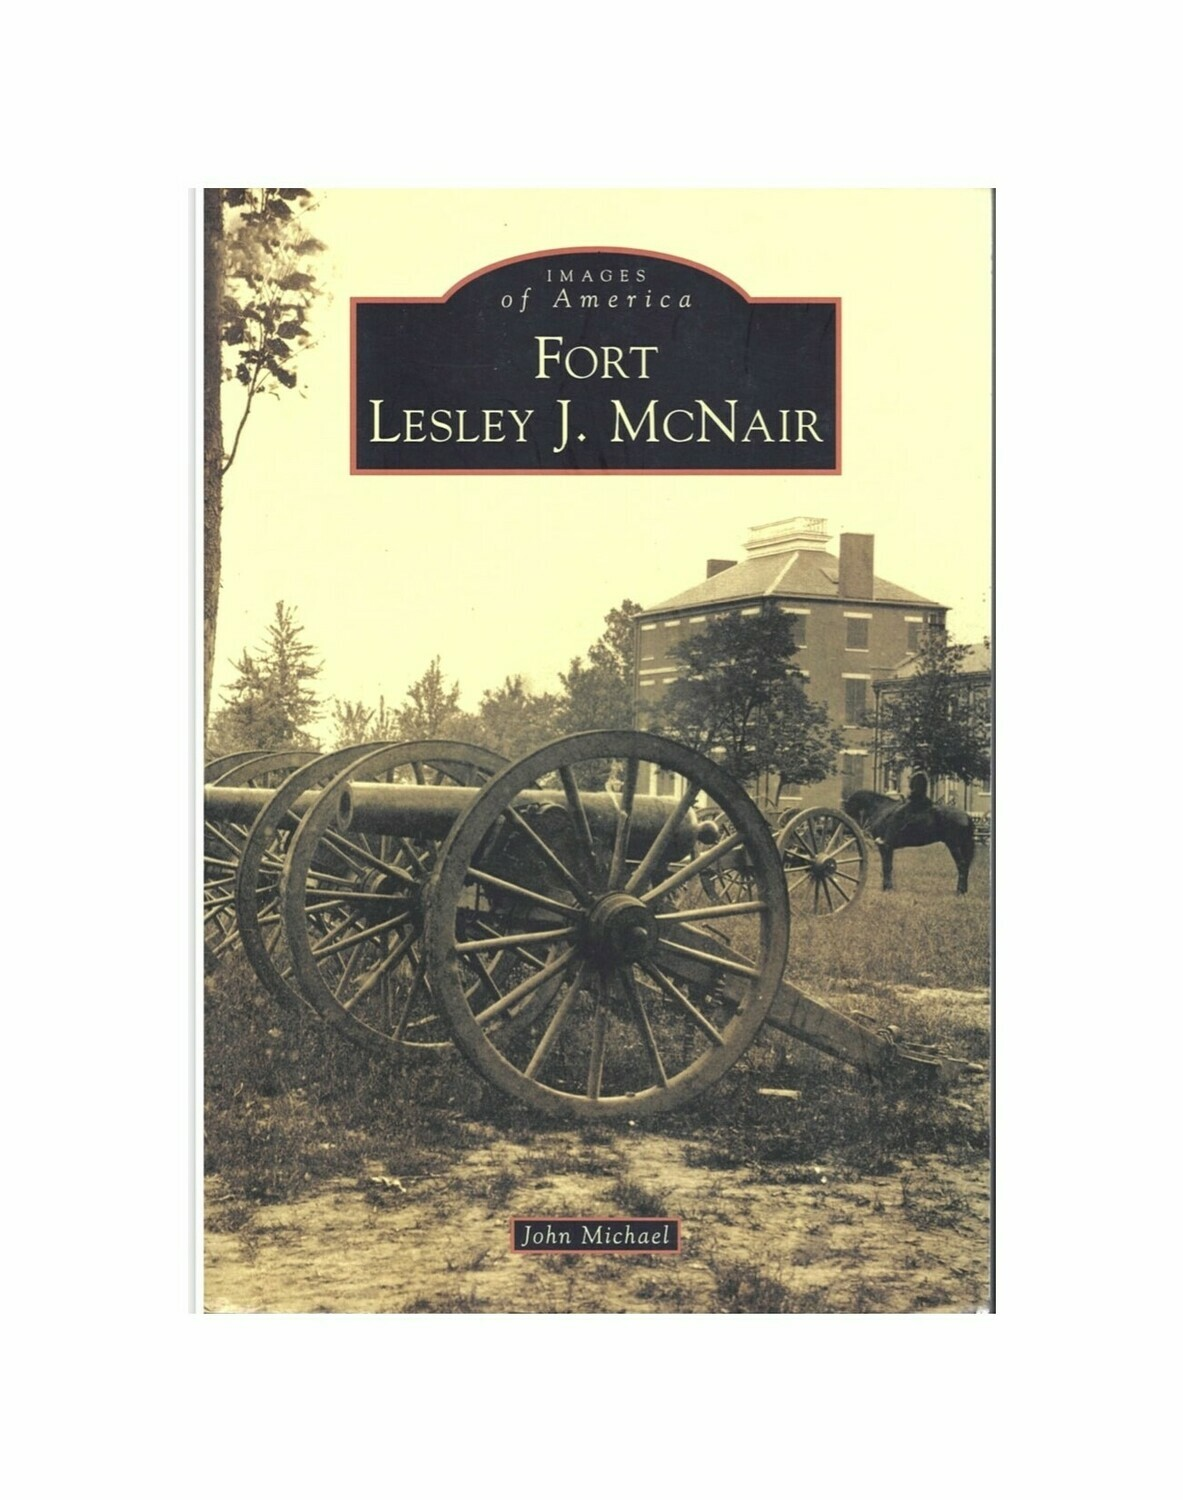 Fort Lesley J. McNair By John Michael